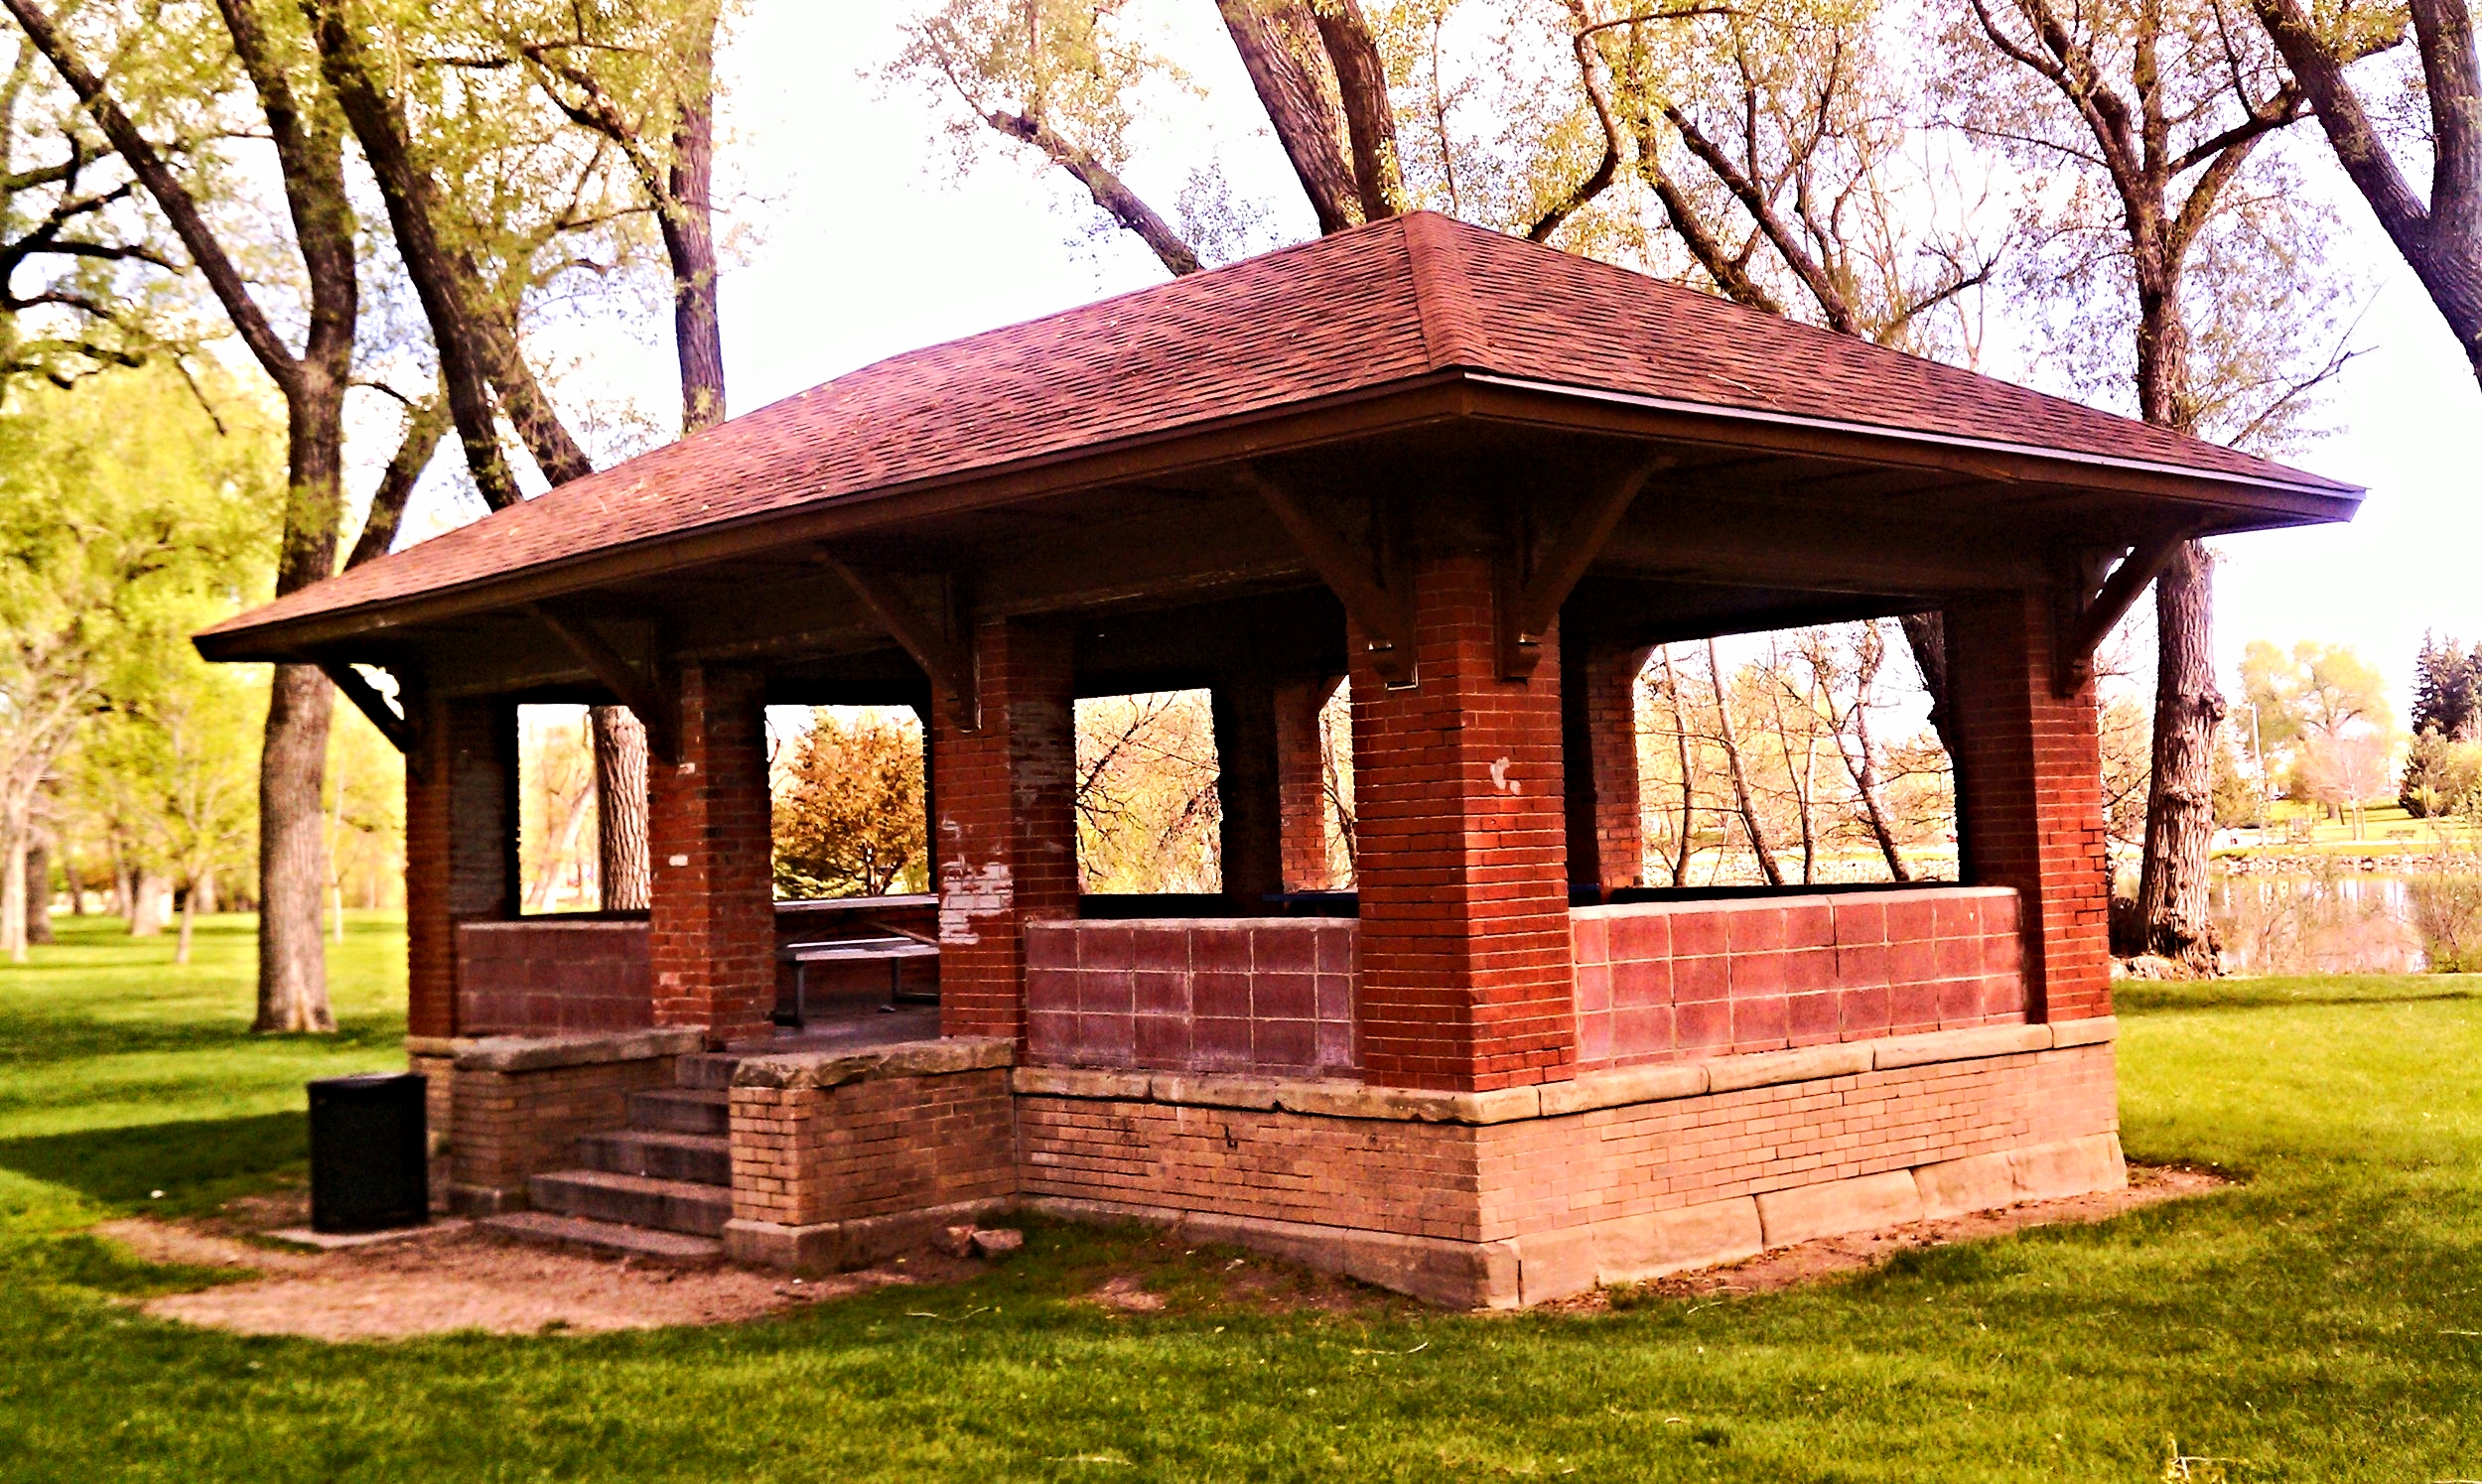 The Warren Rest House was moved from downtown Cheyenne to Holliday Park, where it currently lives